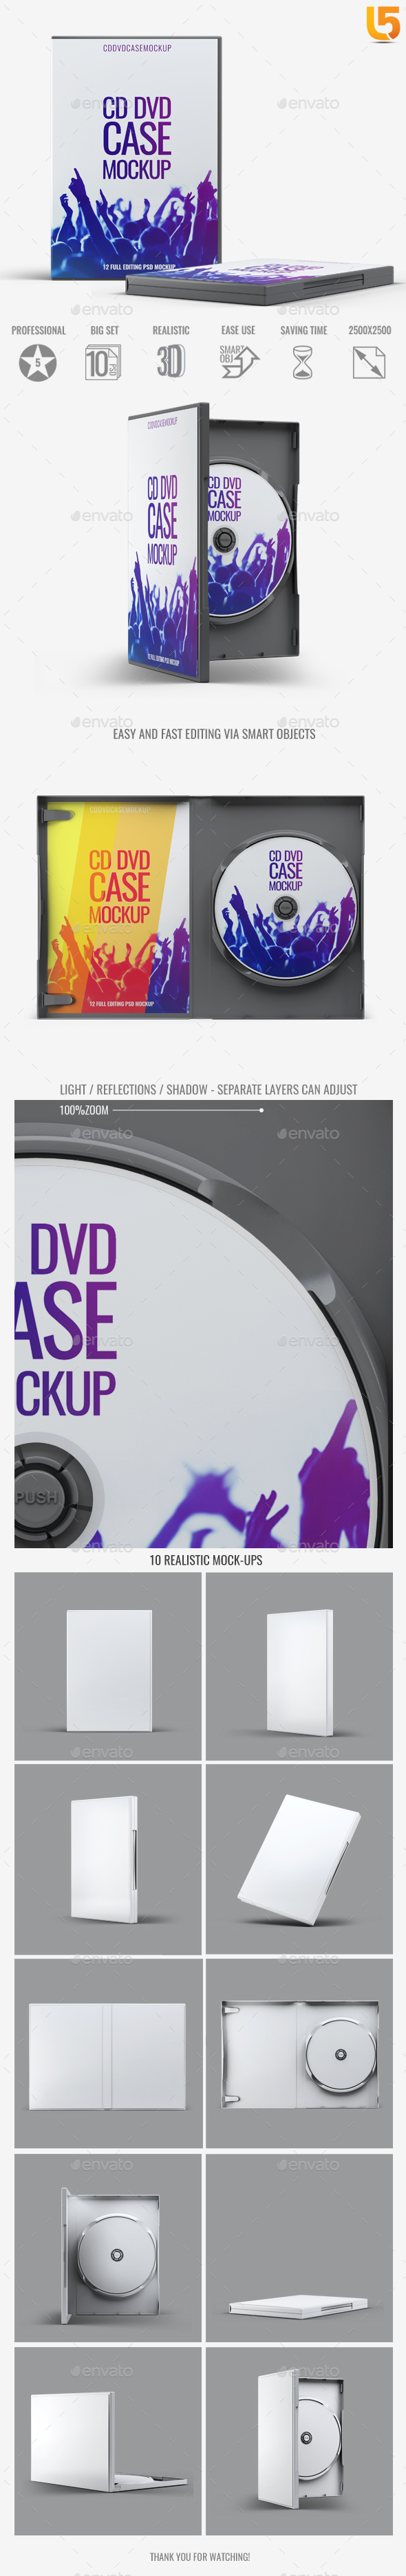 DVD CD Case Mock-Up - Discs Packaging